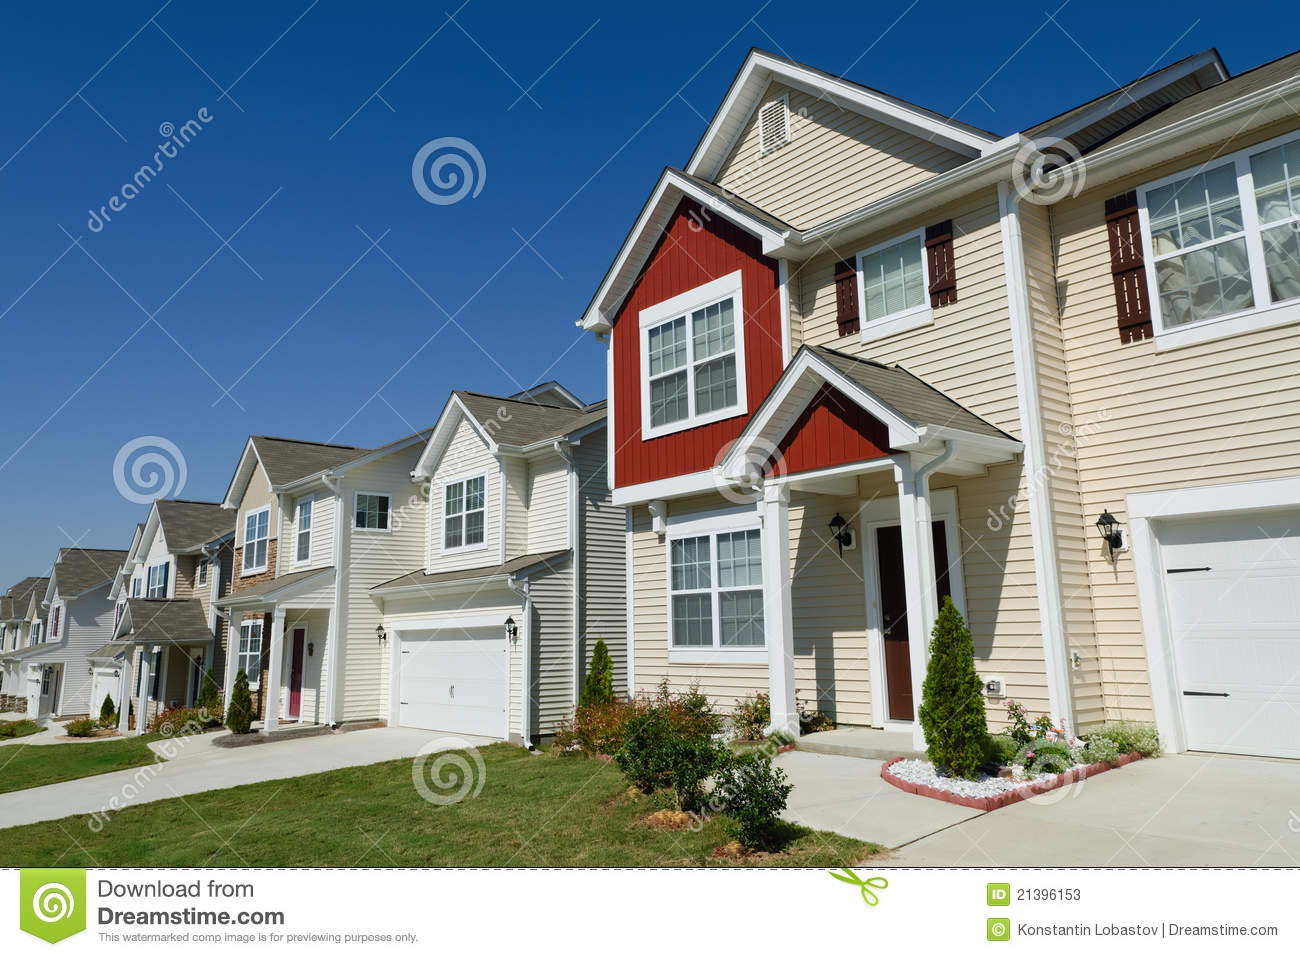 Home Design App Neighbors Street Of Residential Houses Stock Photos Image 21396153